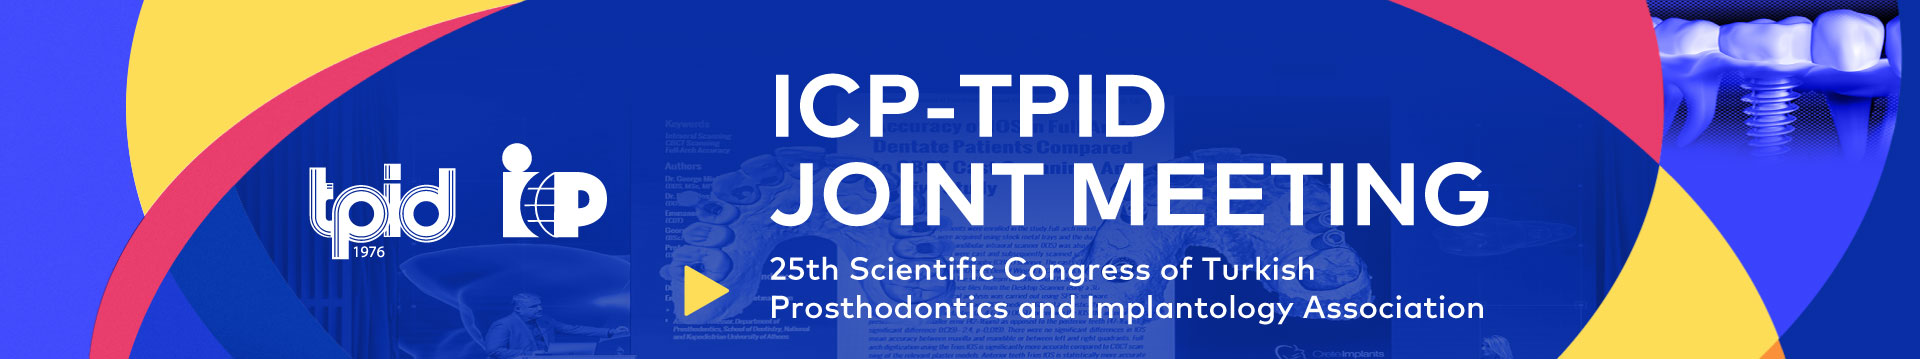 ICP TPID JOINT MEETING